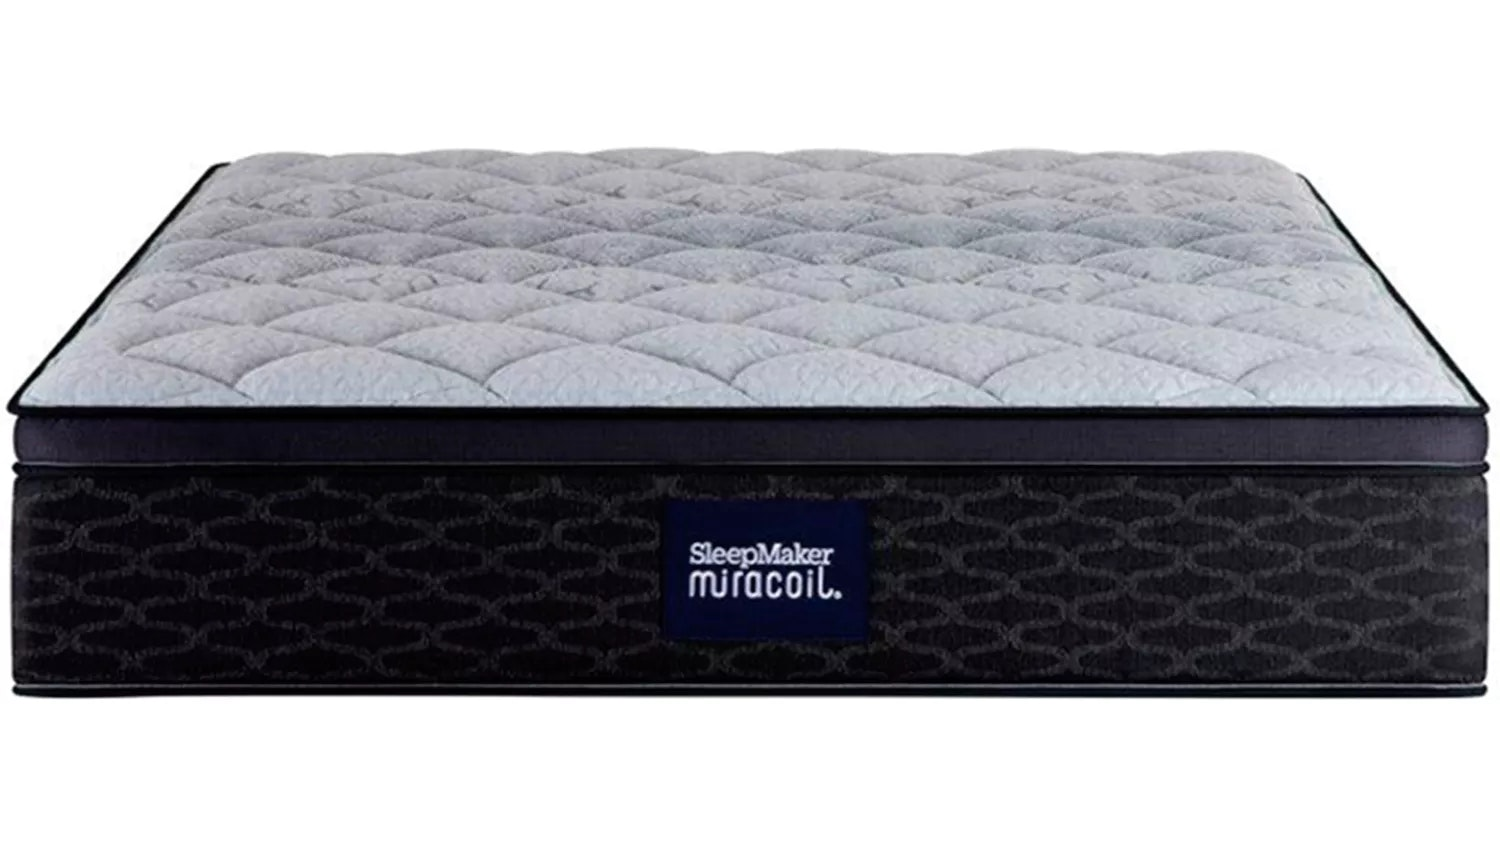 Sleepmaker Miracoil Armadale Super Firm Mattress